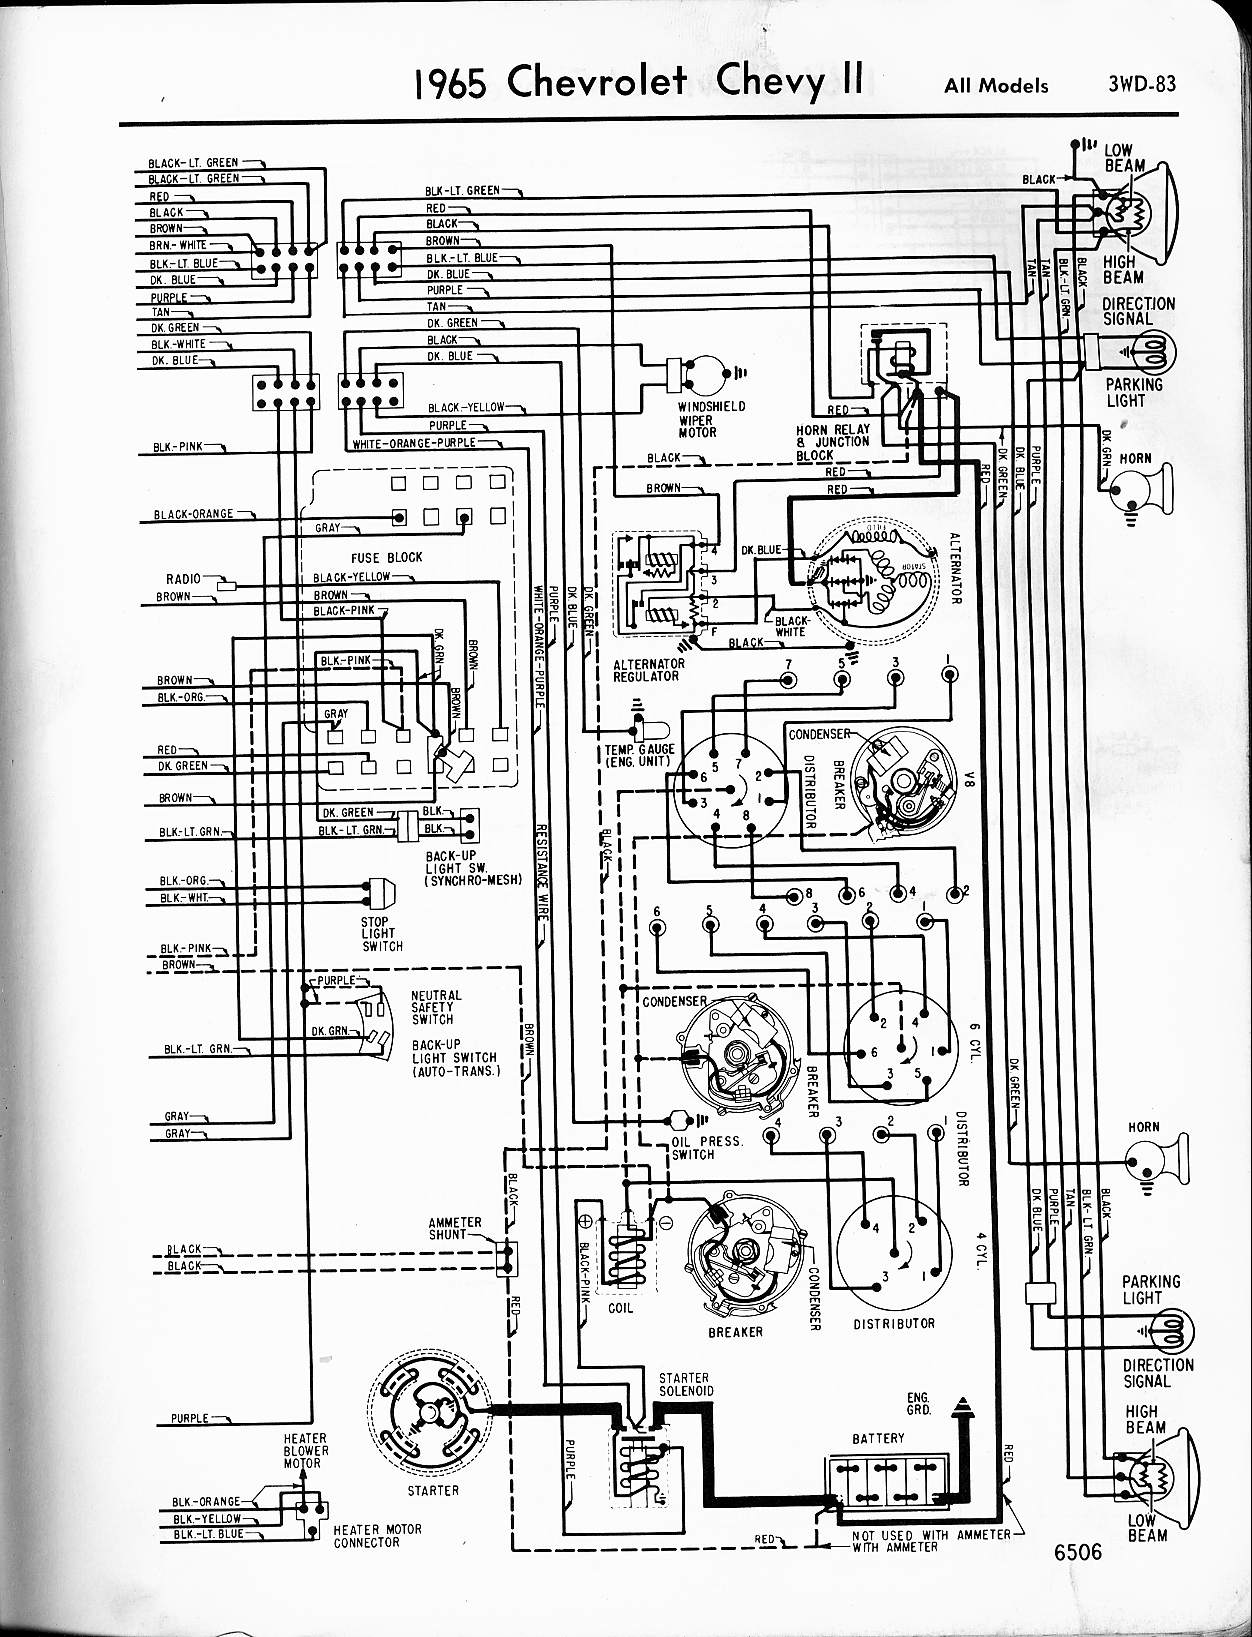 MWireChev65_3WD 083 69 nova wiring diagram 69 nova wiring diagram \u2022 wiring diagrams 1974 nova wiring diagram at fashall.co